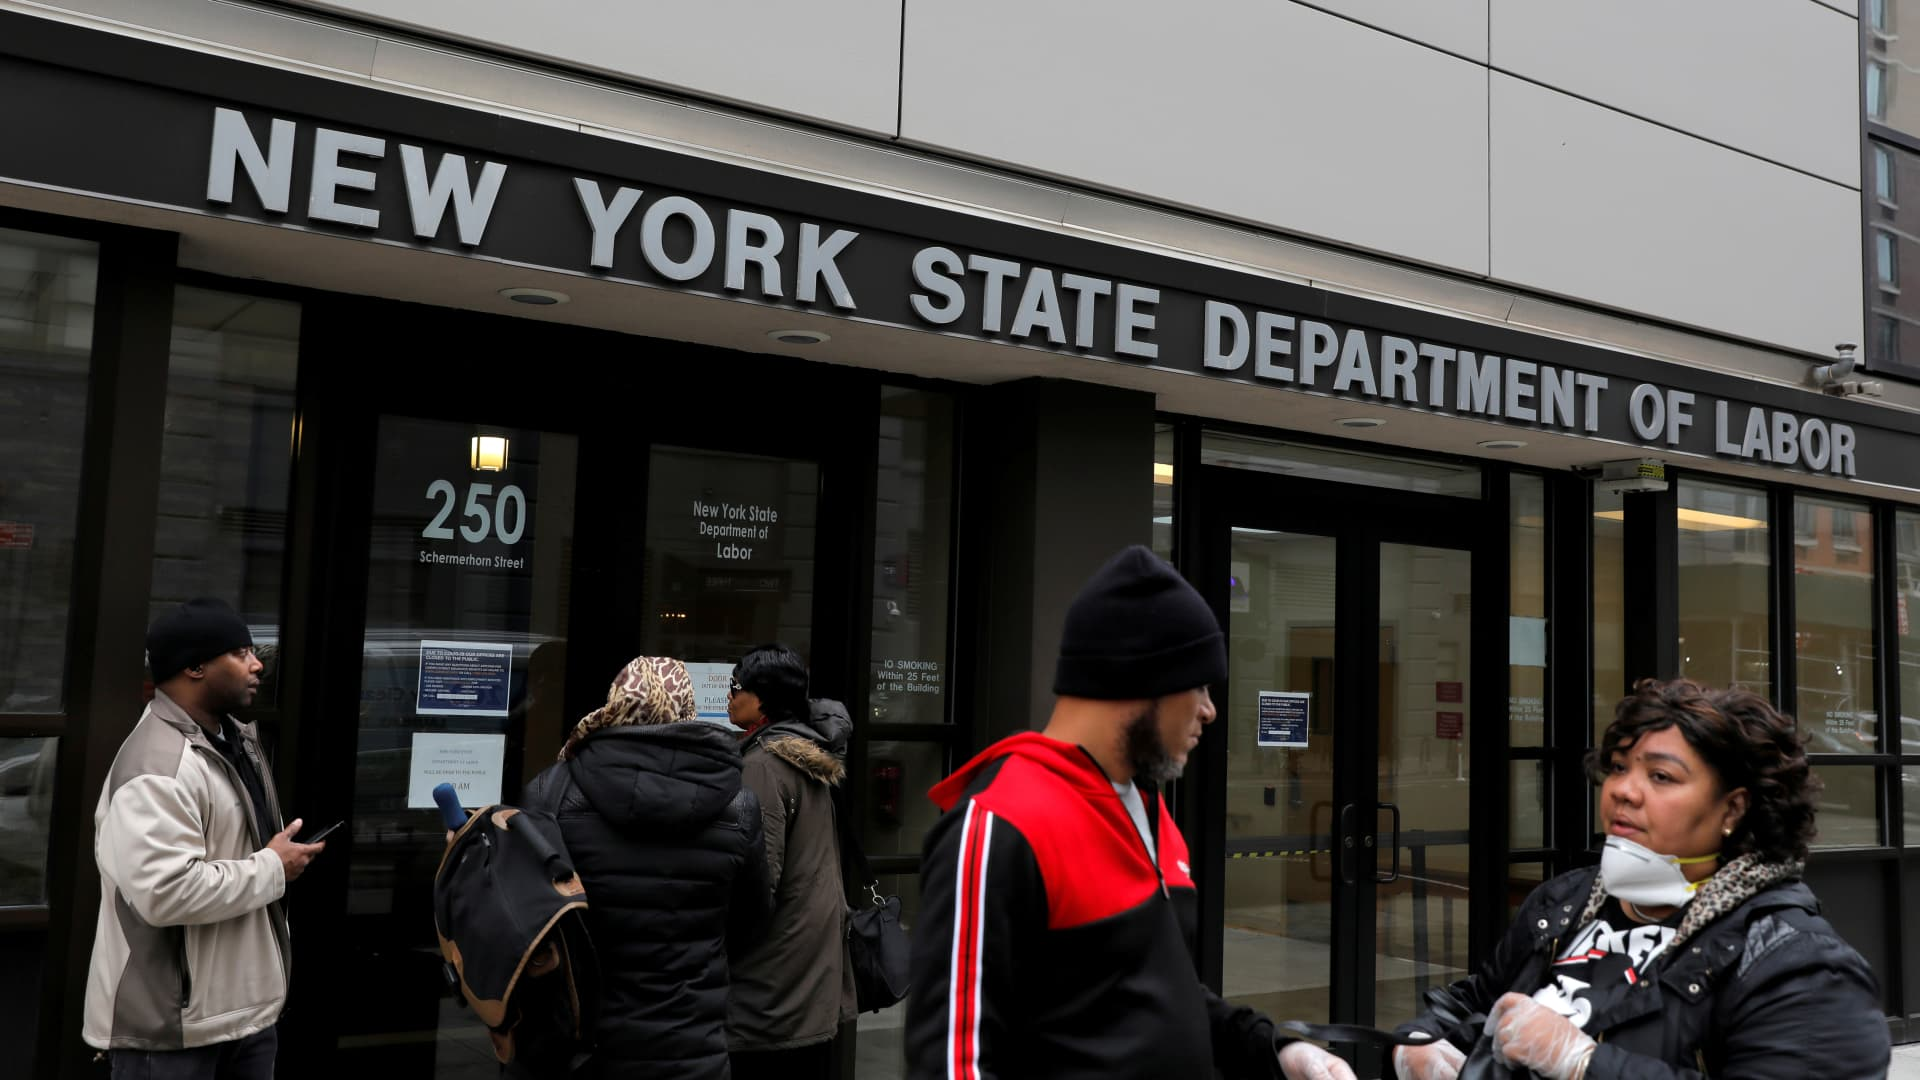 People gather at the entrance for the New York State Department of Labor offices in Brooklyn on March 20, 2020. The Federal Reserve estimates that 47 million people could lose their jobs before the COVID-19 crisis ends.